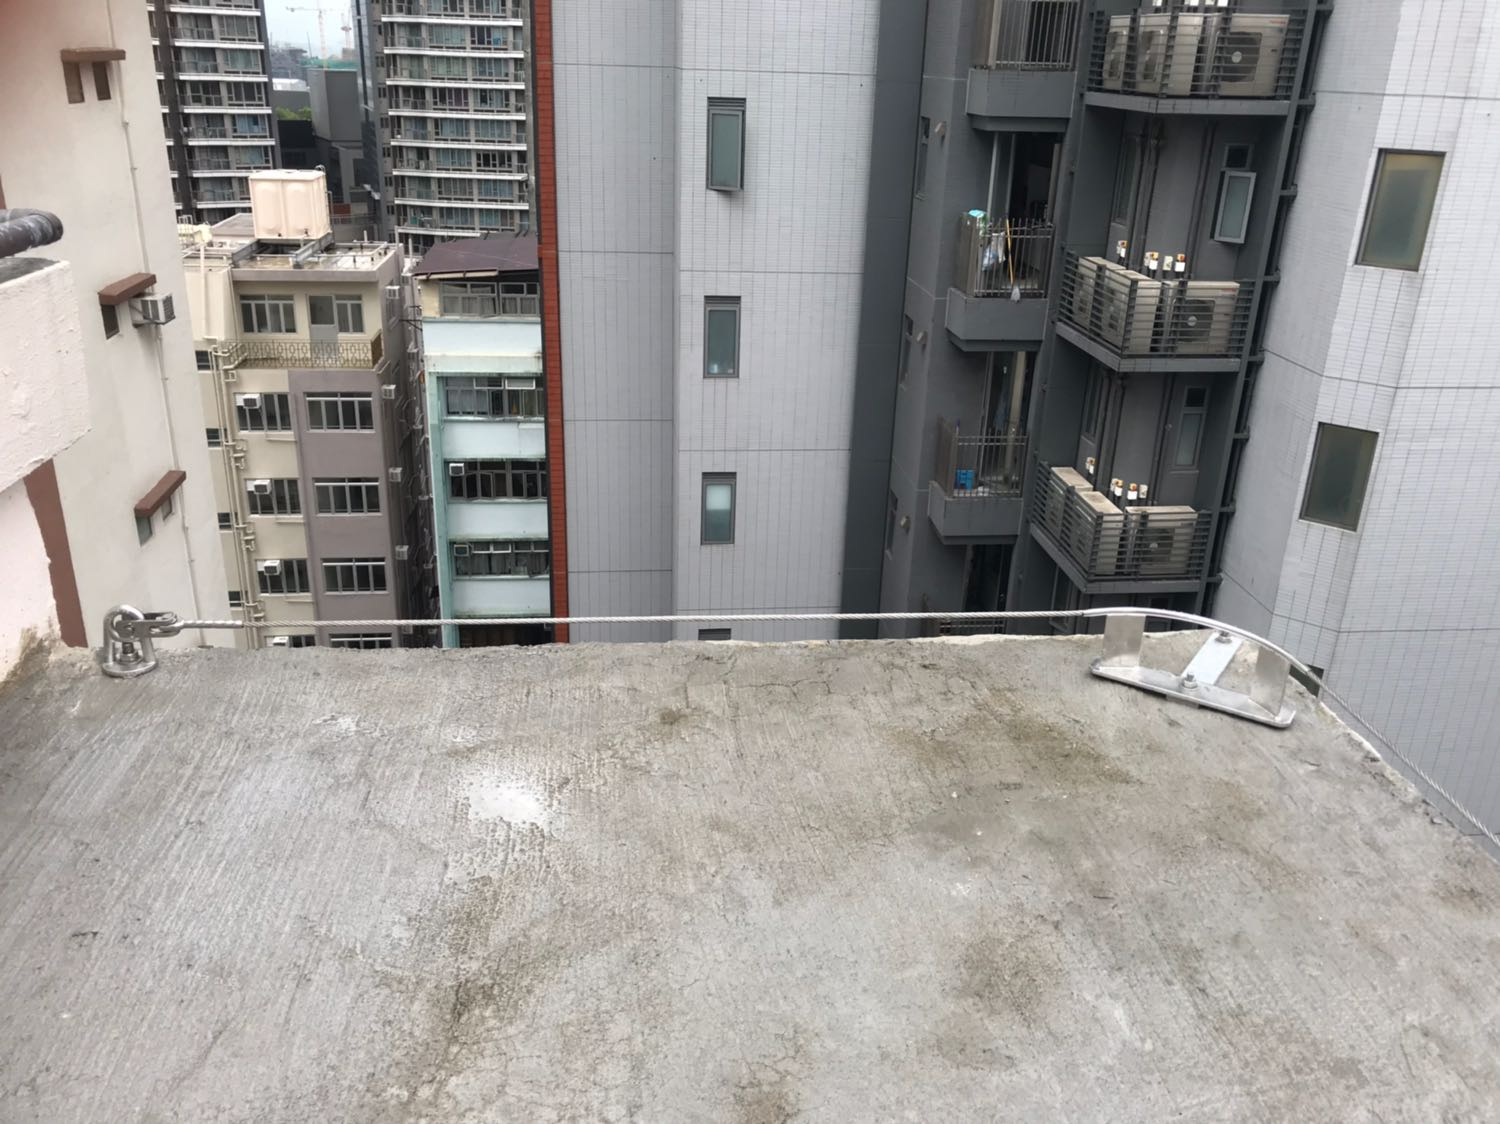 concrete-fixing-project-15 2017-10-25 at 12.51.08 PM